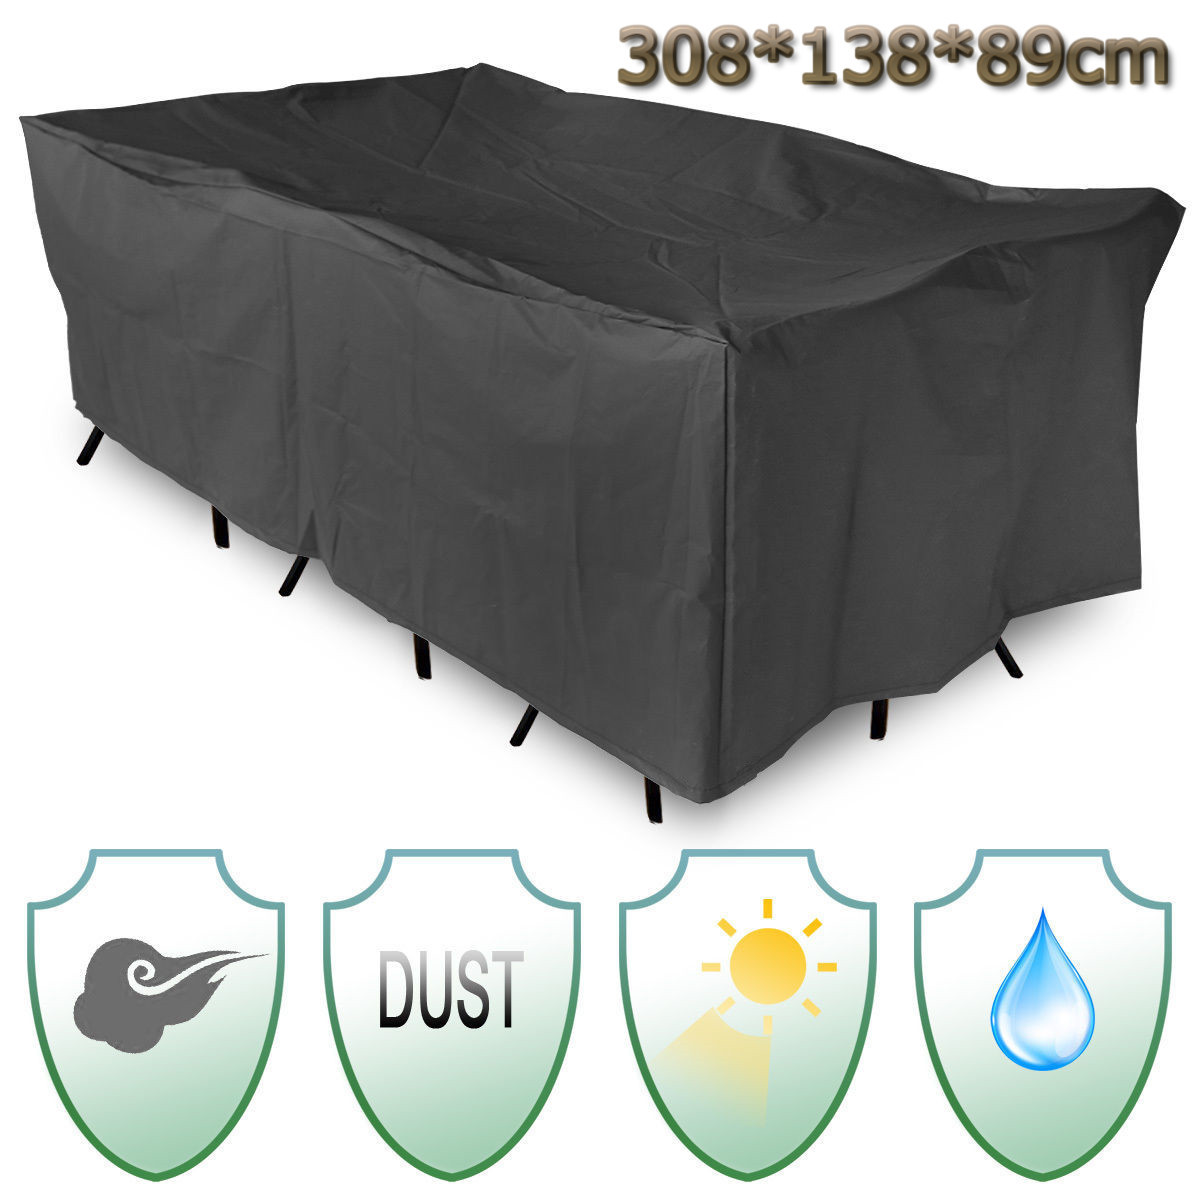 Patio Garden Furniture Cover Chair Table Cover 308x138cm Rain Dust Snow UV Resistant Table Cloth Home Textiles Waterproof